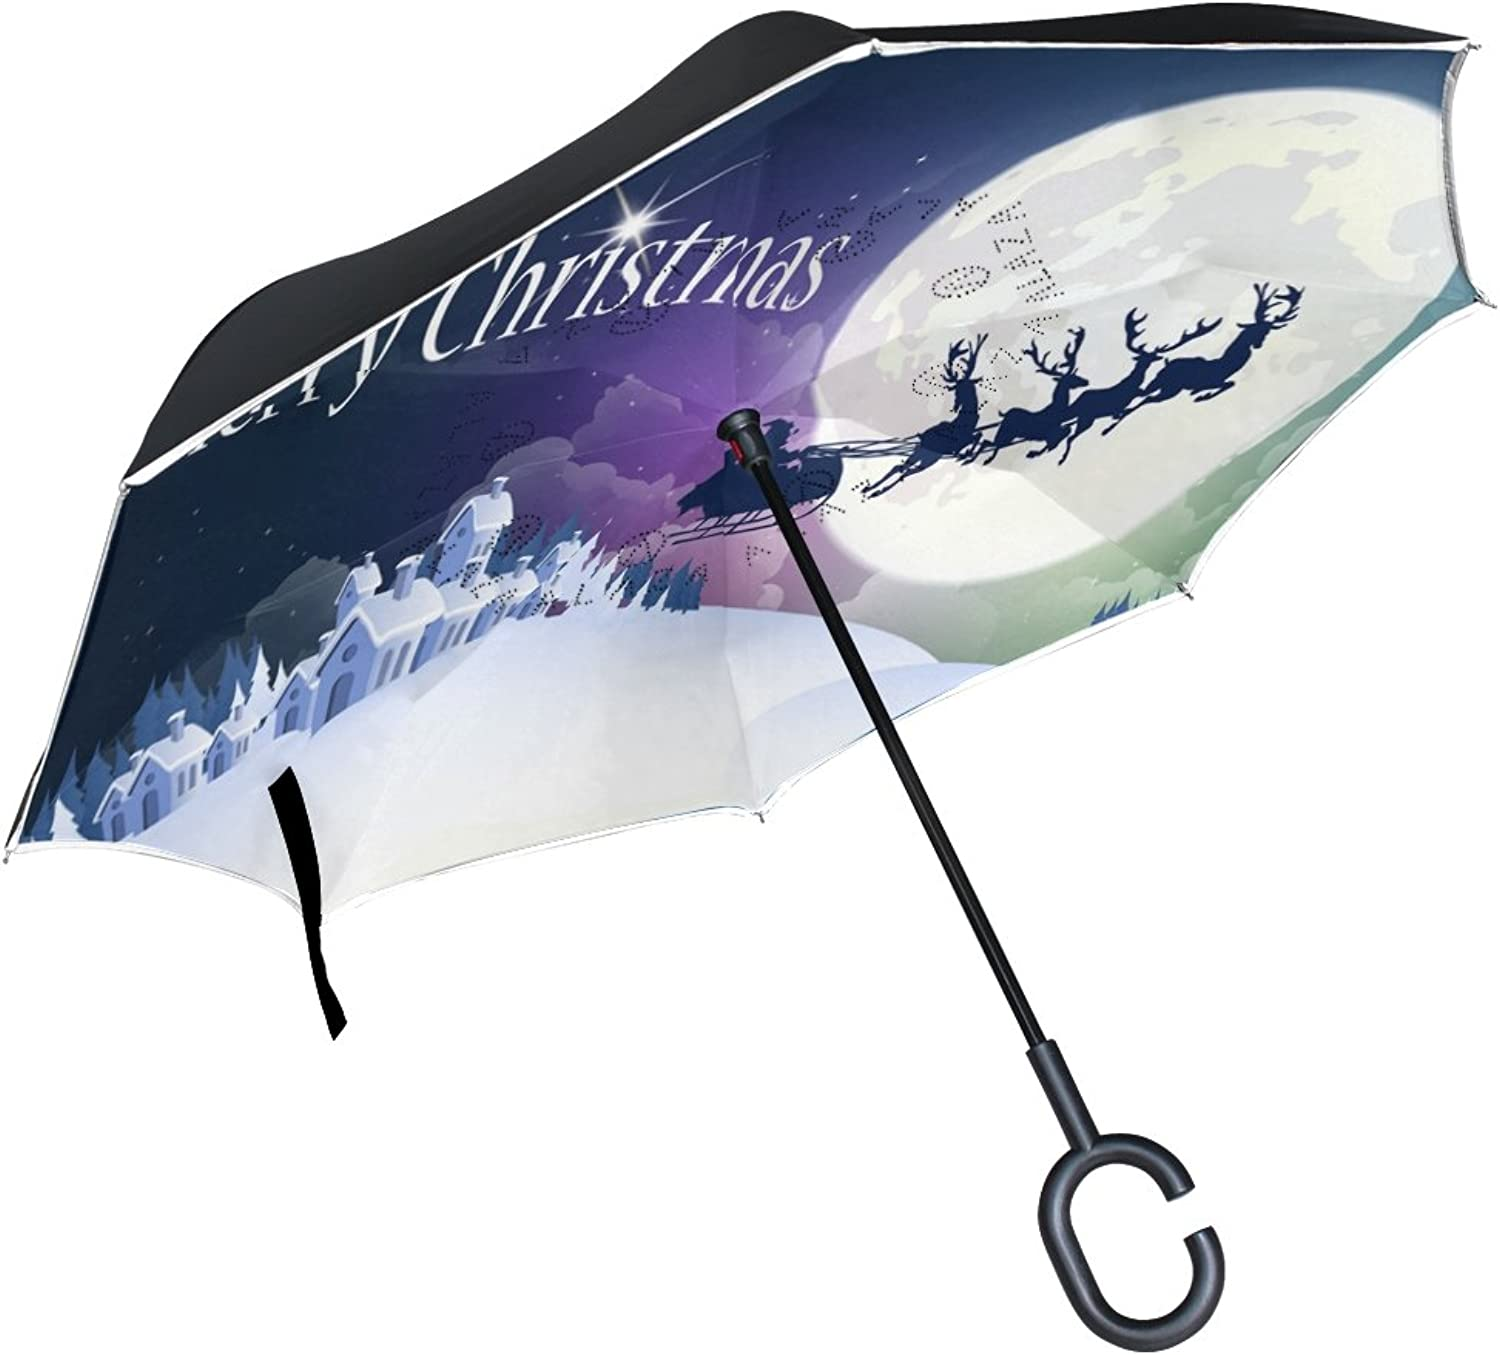 MAPOLO Christmas Pattern Ingreened Double Layer Straight Umbrellas InsideOut Reversible Umbrella with CShaped Handle for Rain Sun Car Use